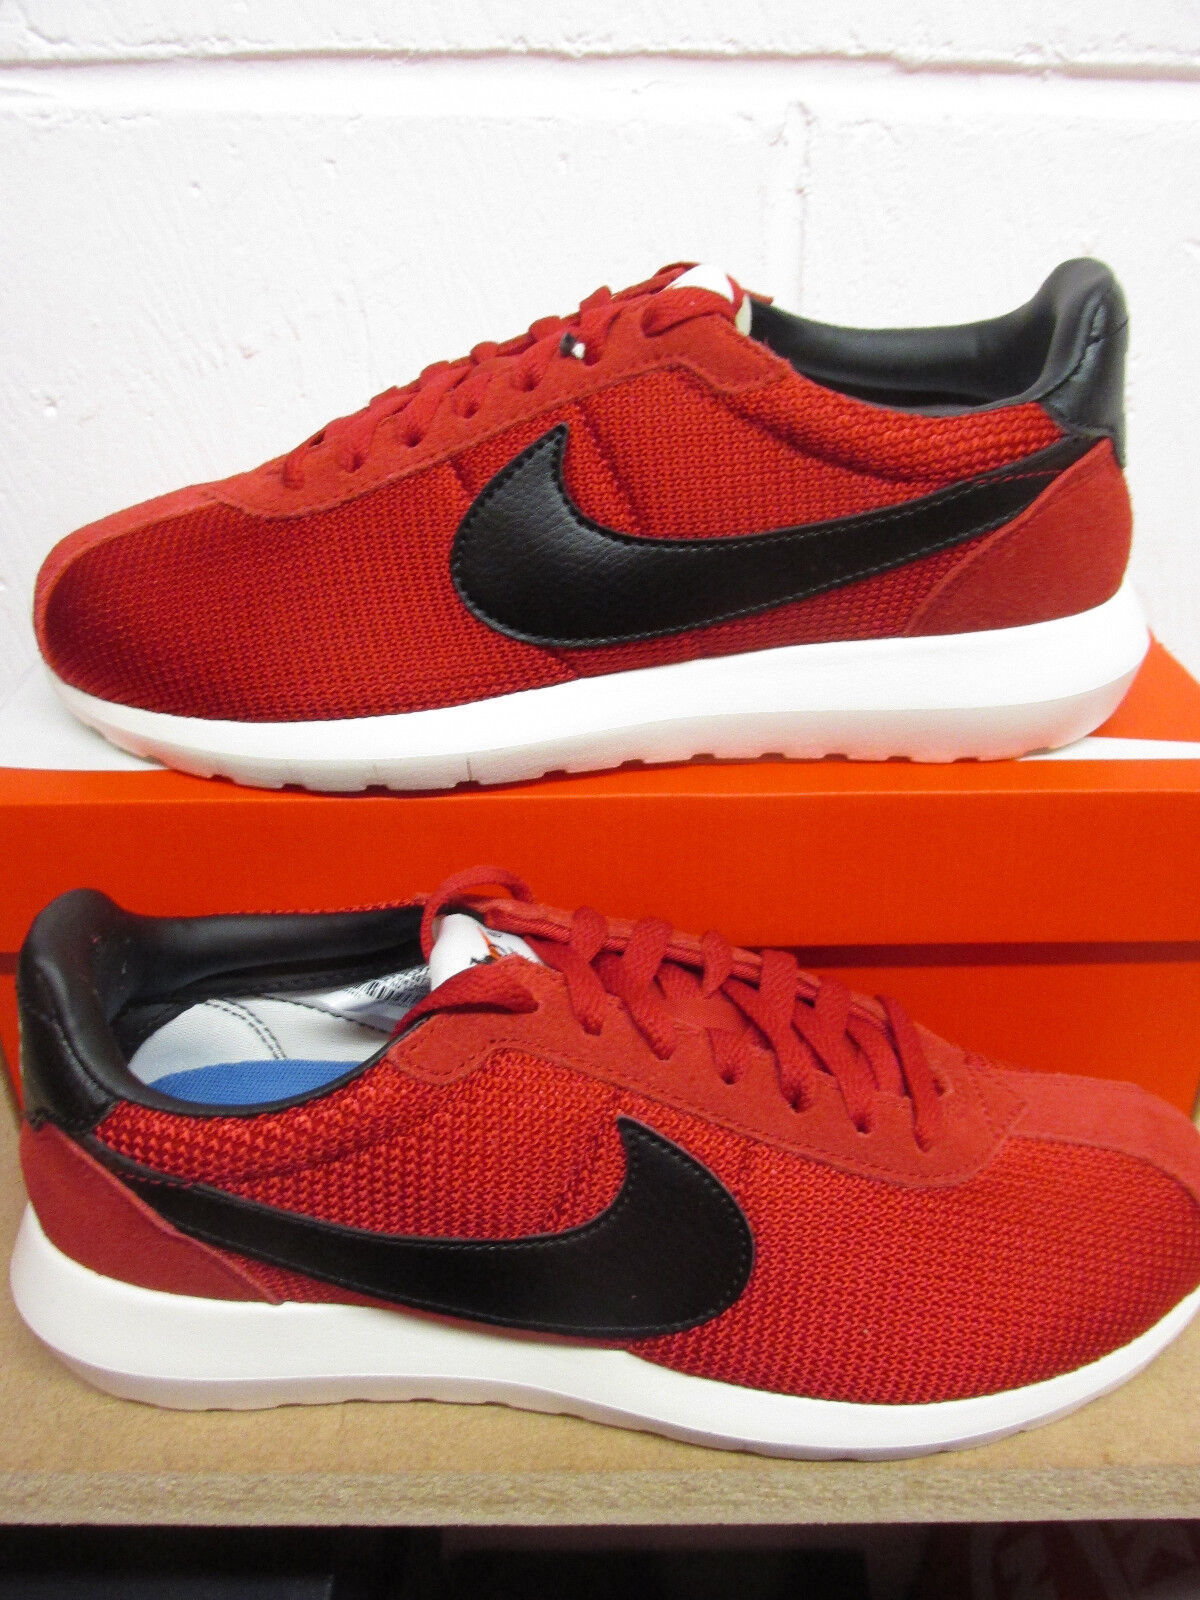 Nike Roshe LD-1000 601  Uomo Running Trainers 844266 601 LD-1000 Sneakers Schuhes 13d28c